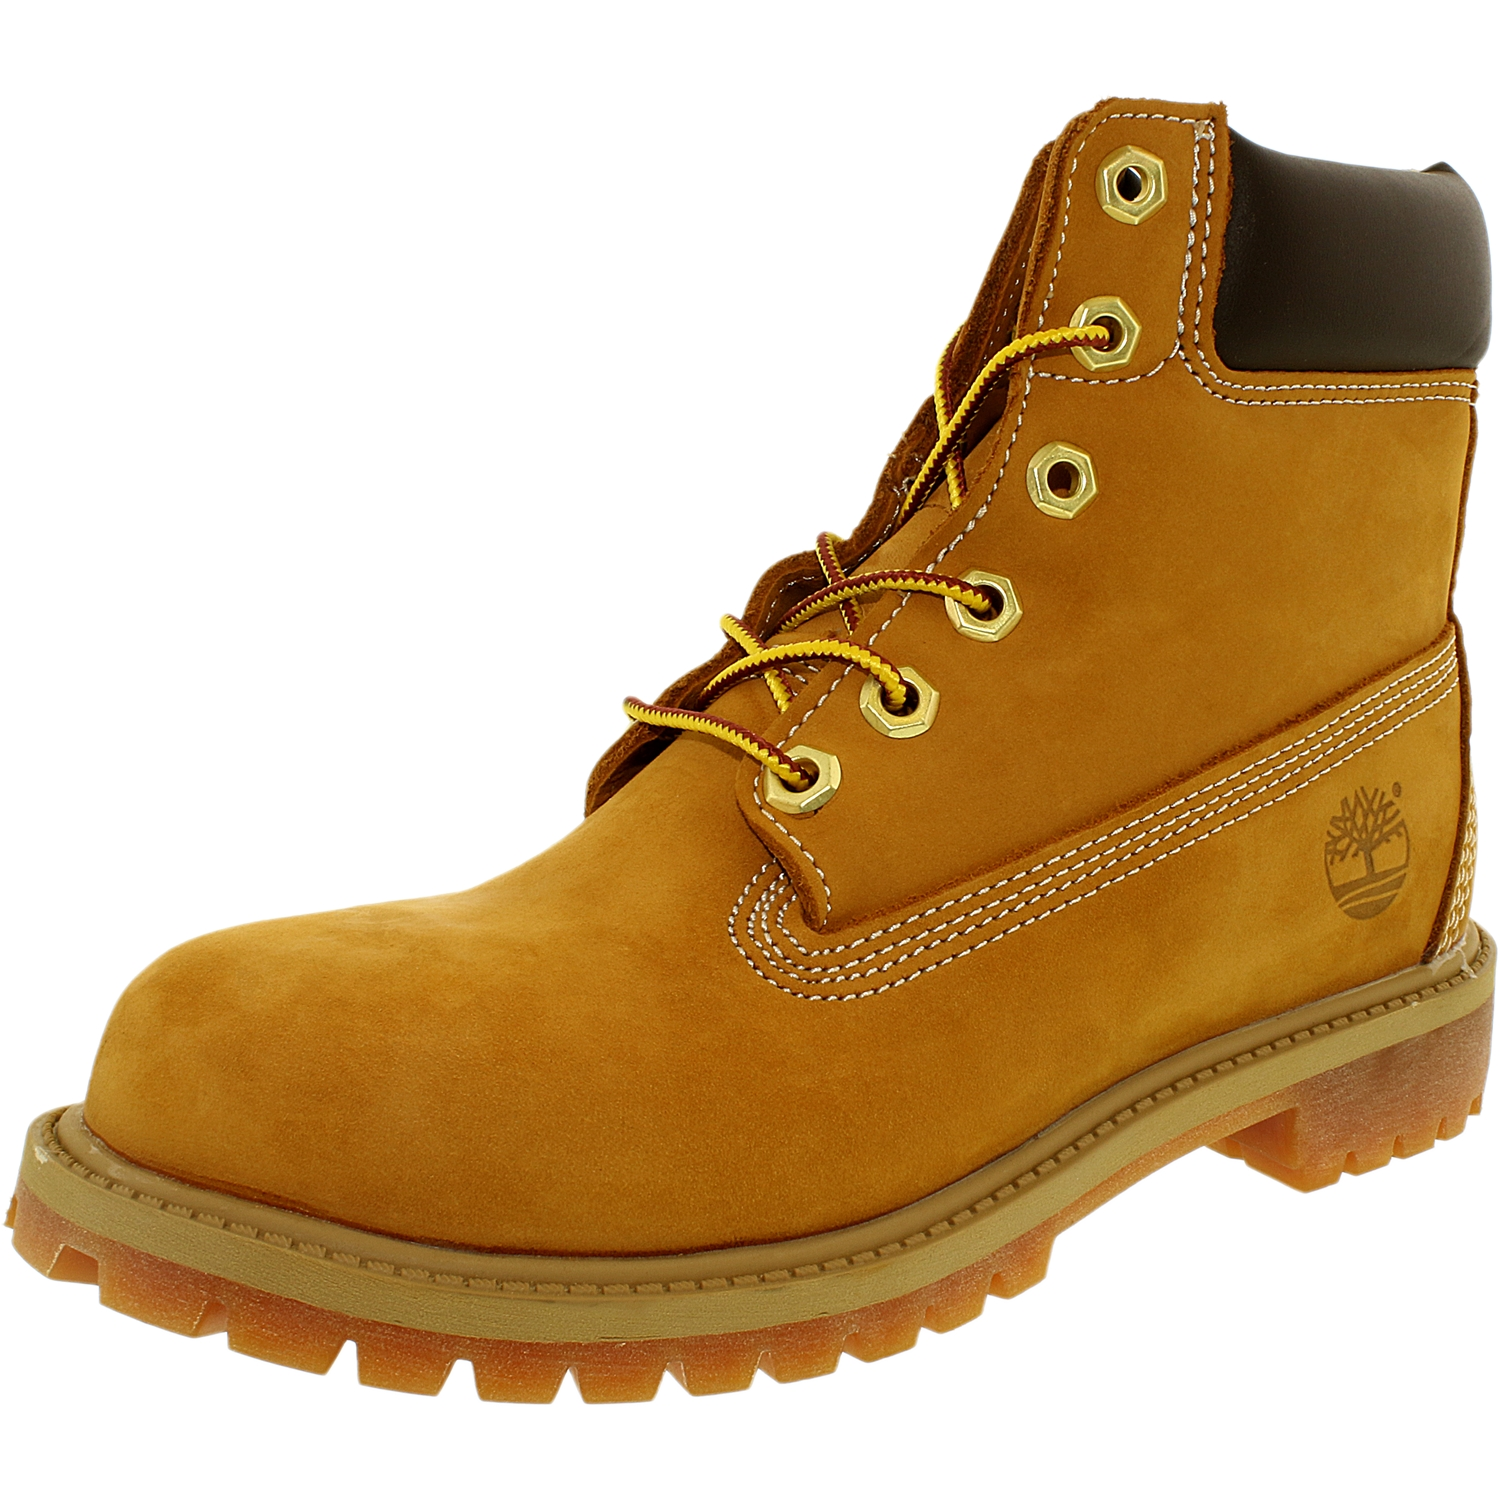 Timberland Boy's 6 Inch Premium Boot Nubuck Wheat Yellow Ankle-High Leather - 4.5M